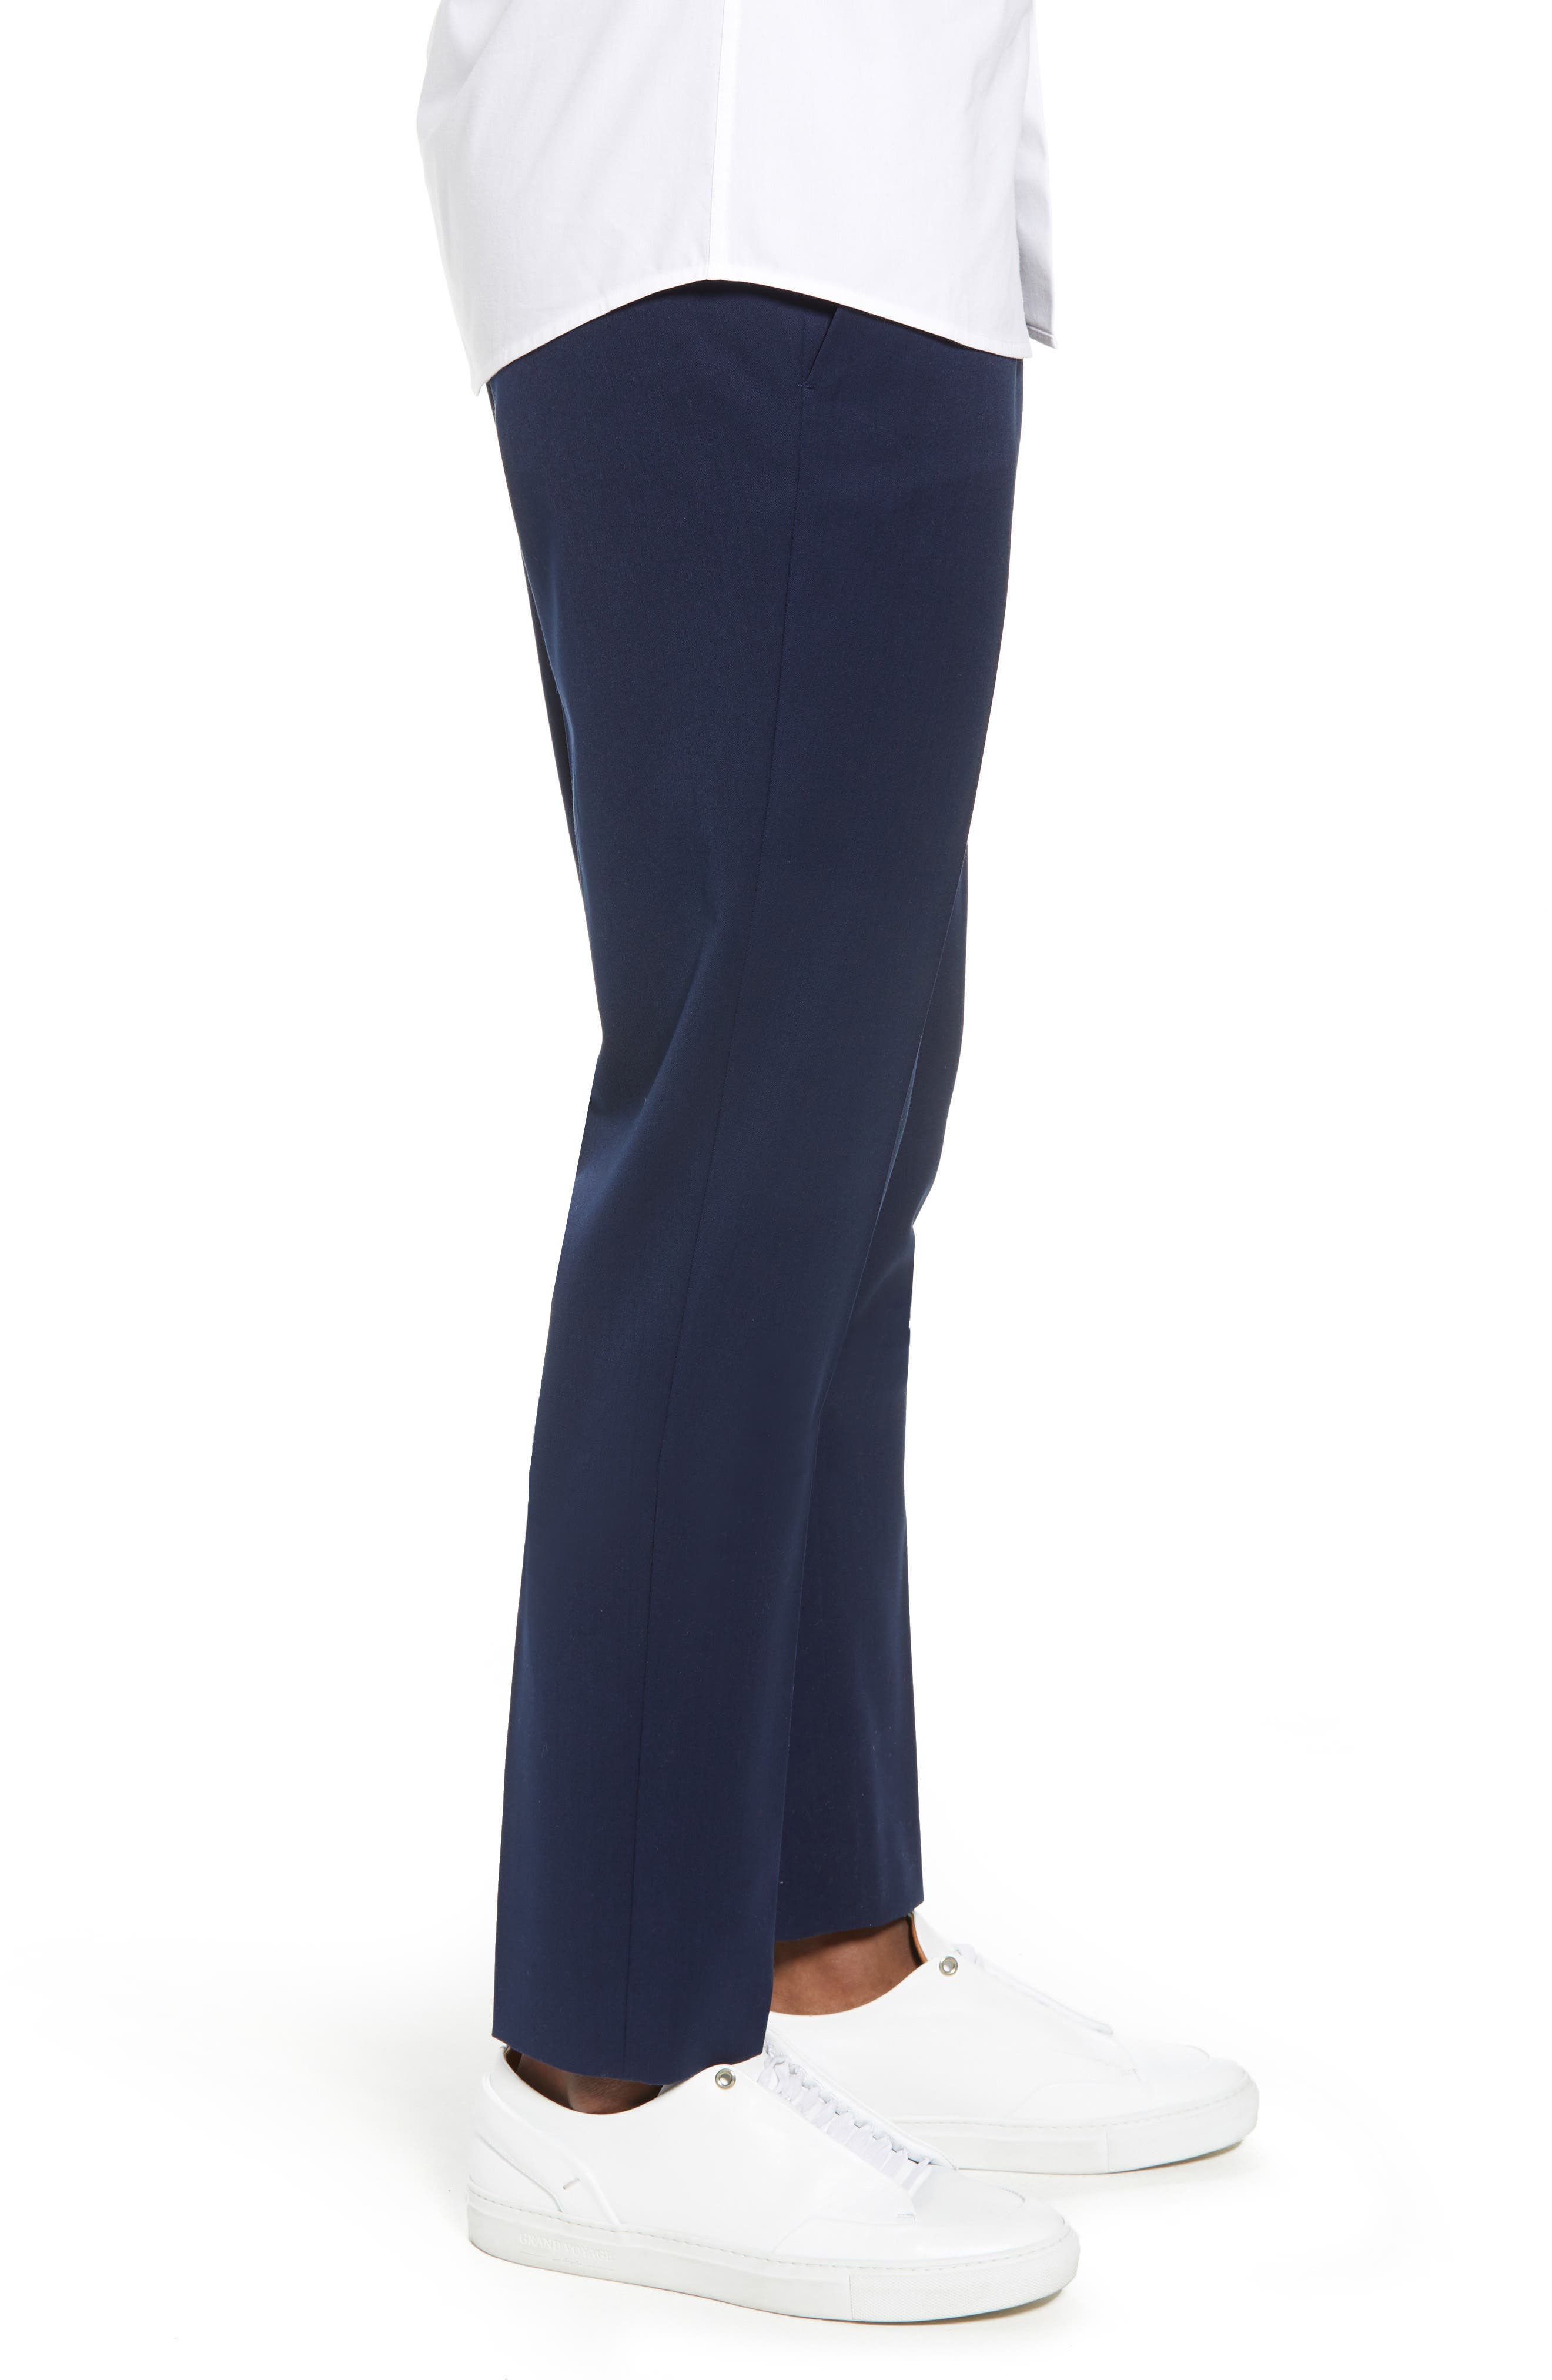 Muscle Fit Trousers,                             Alternate thumbnail 3, color,                             NAVY BLUE